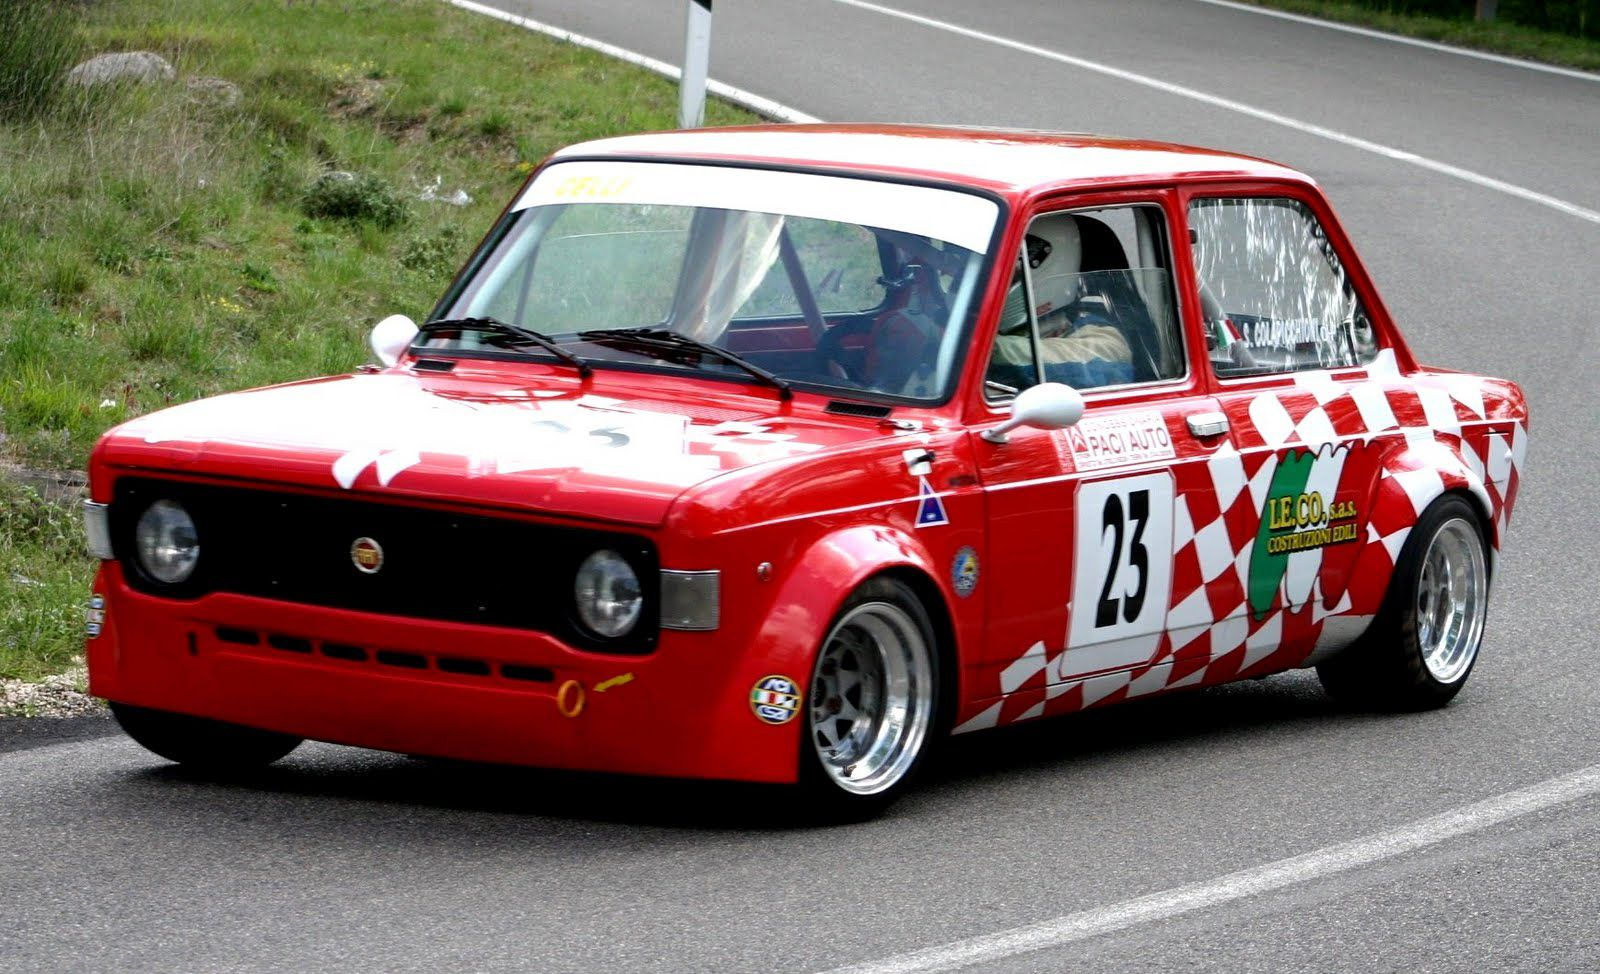 Fiat 128 Race Car With Images Fiat 128 Fiat Cars Fiat Sport